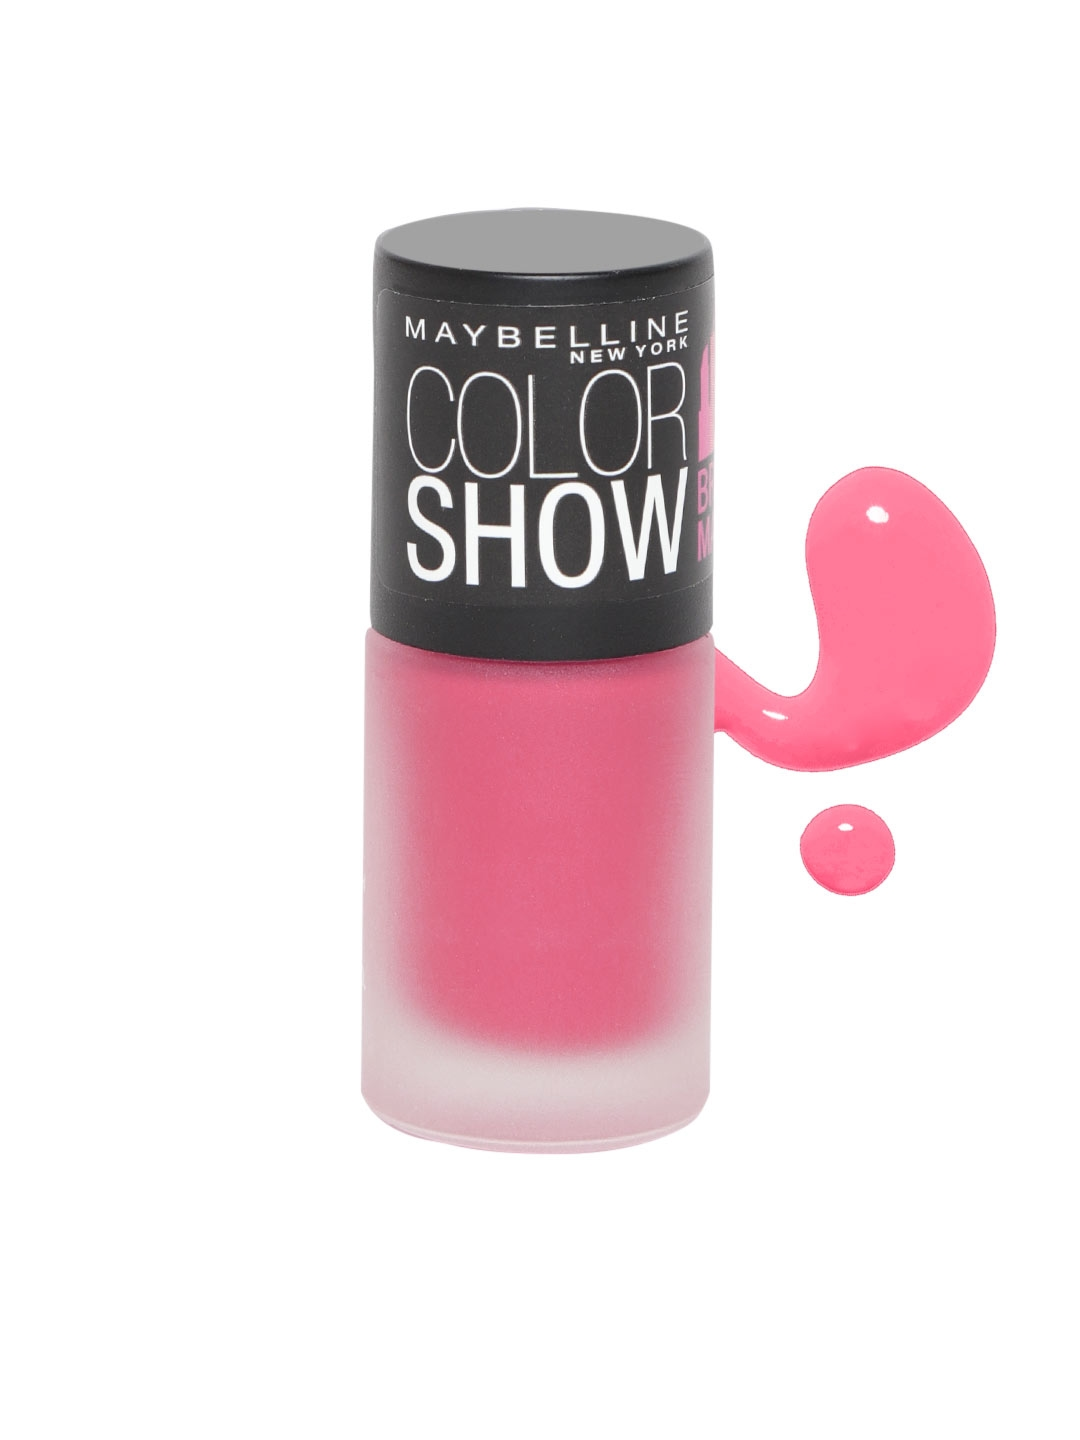 9c41f8f2e1 Buy Maybelline Color Show Bright Mattes Merry Fuchsia Nail Paint ...